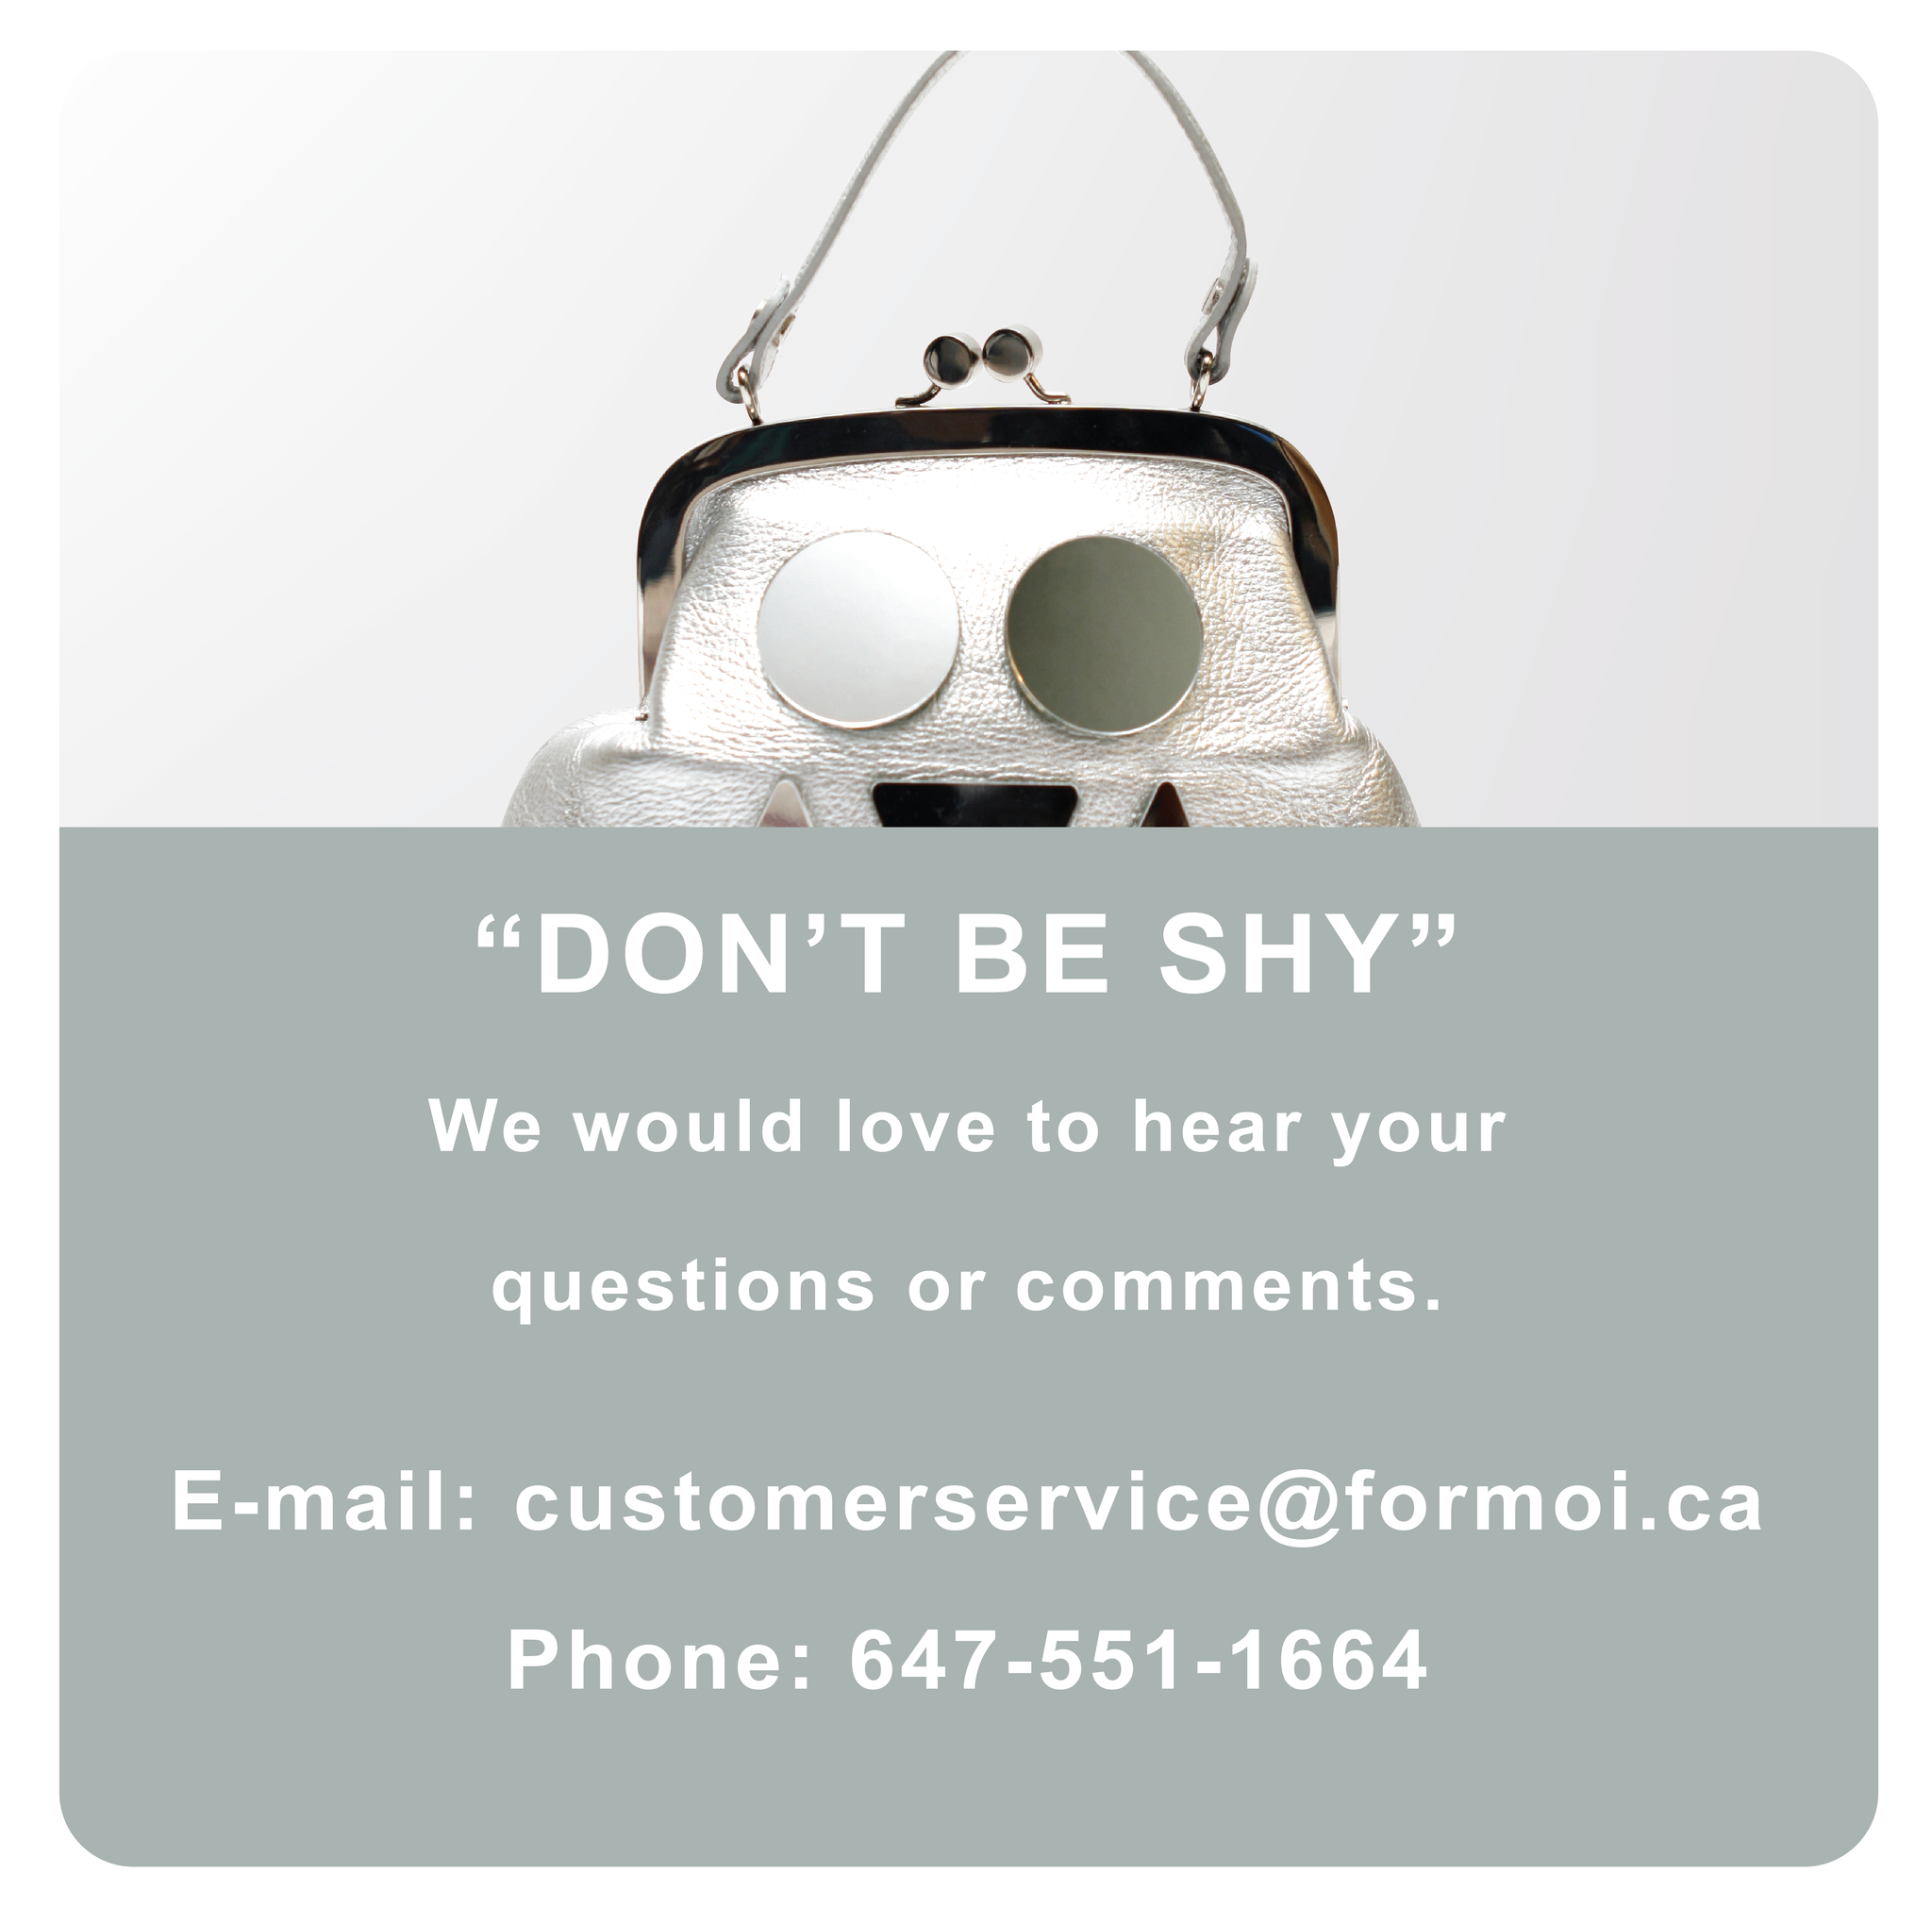 Don't be shy! We would love to hear from you. Email: customerservice@formoi.ca Phone: 647-551-1664